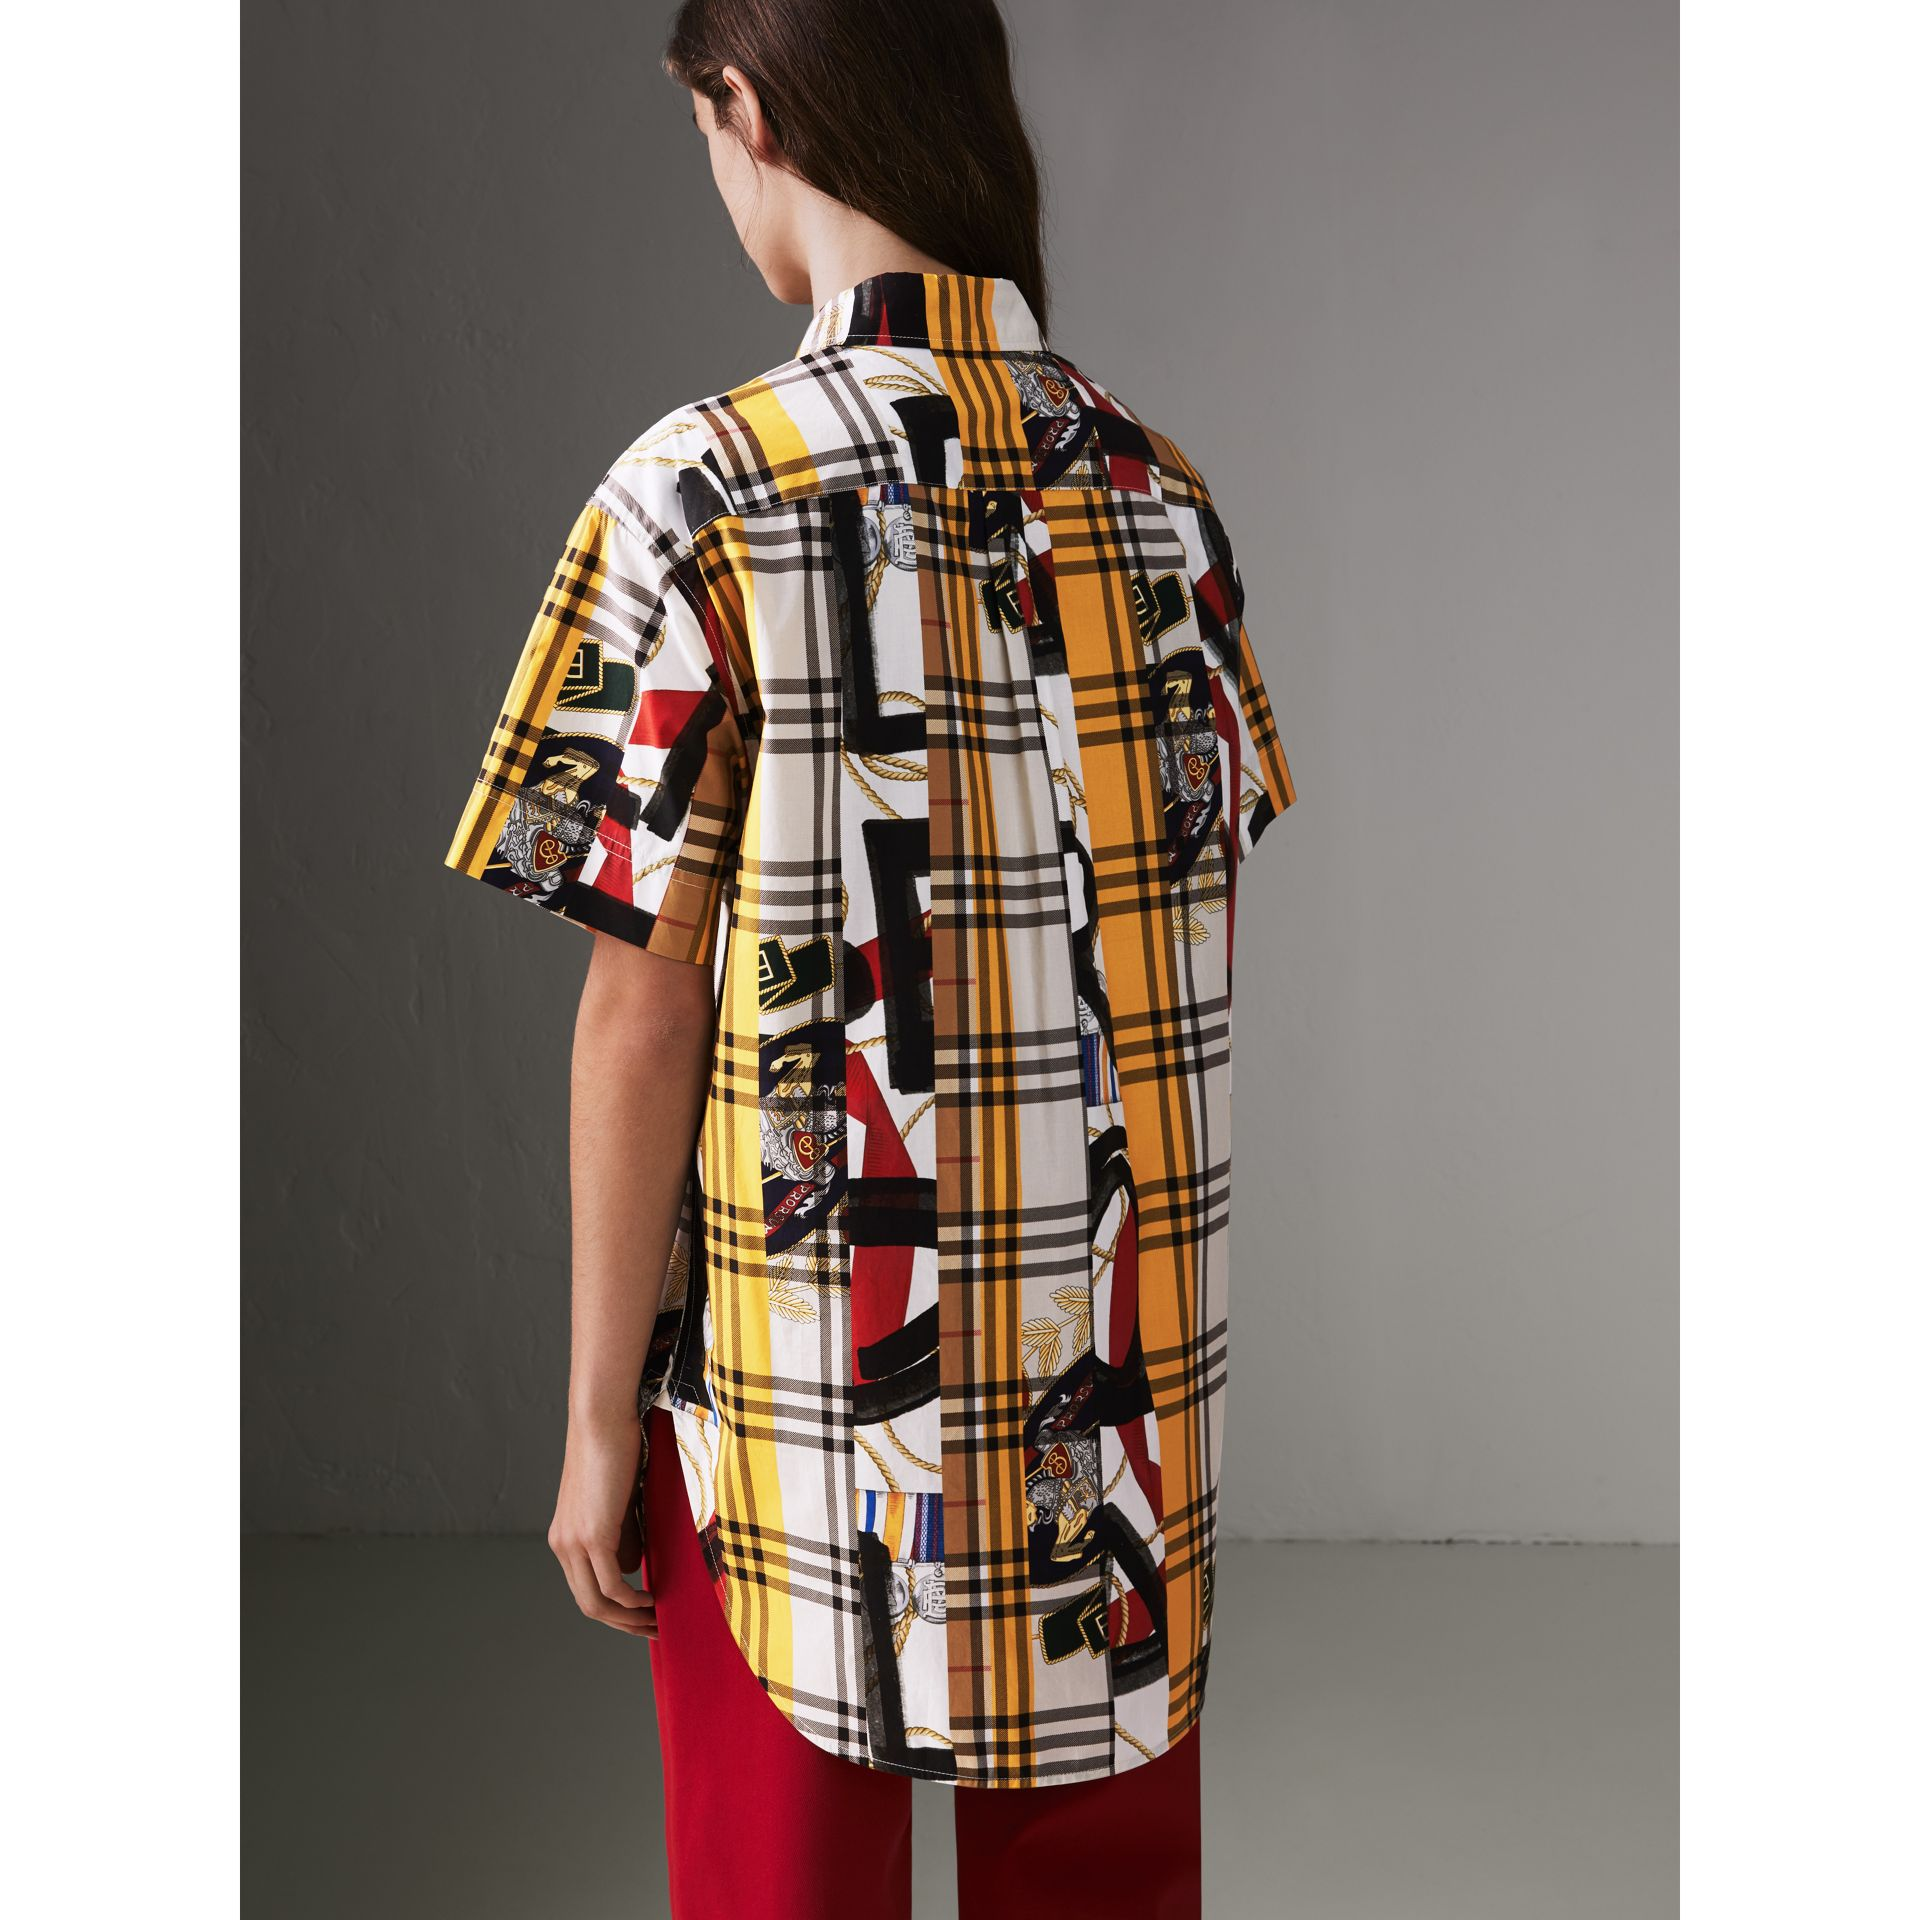 Short-sleeve Archive Scarf Print Check Cotton Shirt in Multicolour - Women | Burberry United Kingdom - gallery image 2